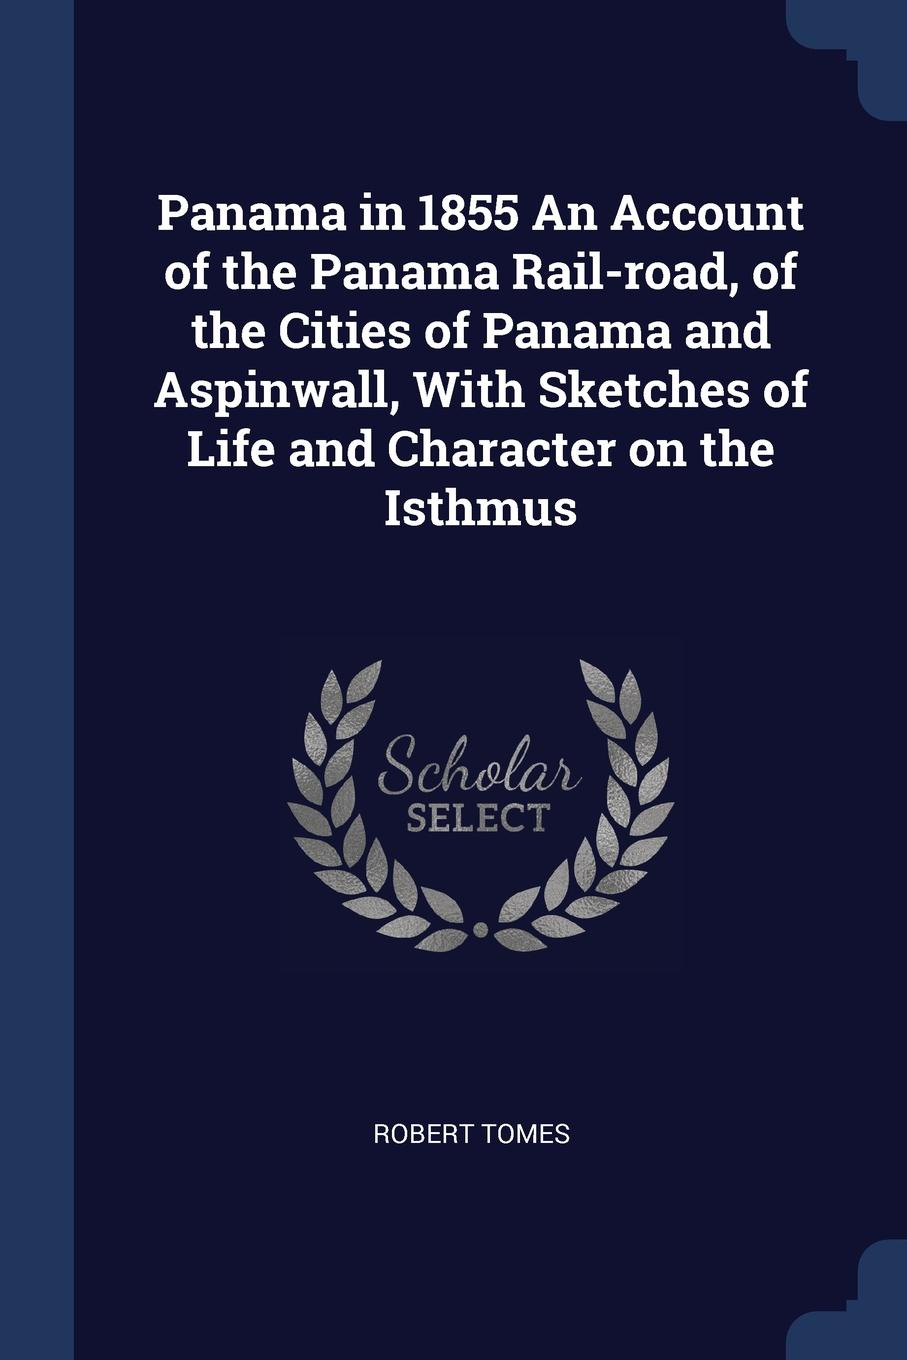 Panama in 1855 An Account of the Panama Rail-road, of the Cities of Panama and Aspinwall, With Sketches of Life and Character on the Isthmus. Robert Tomes